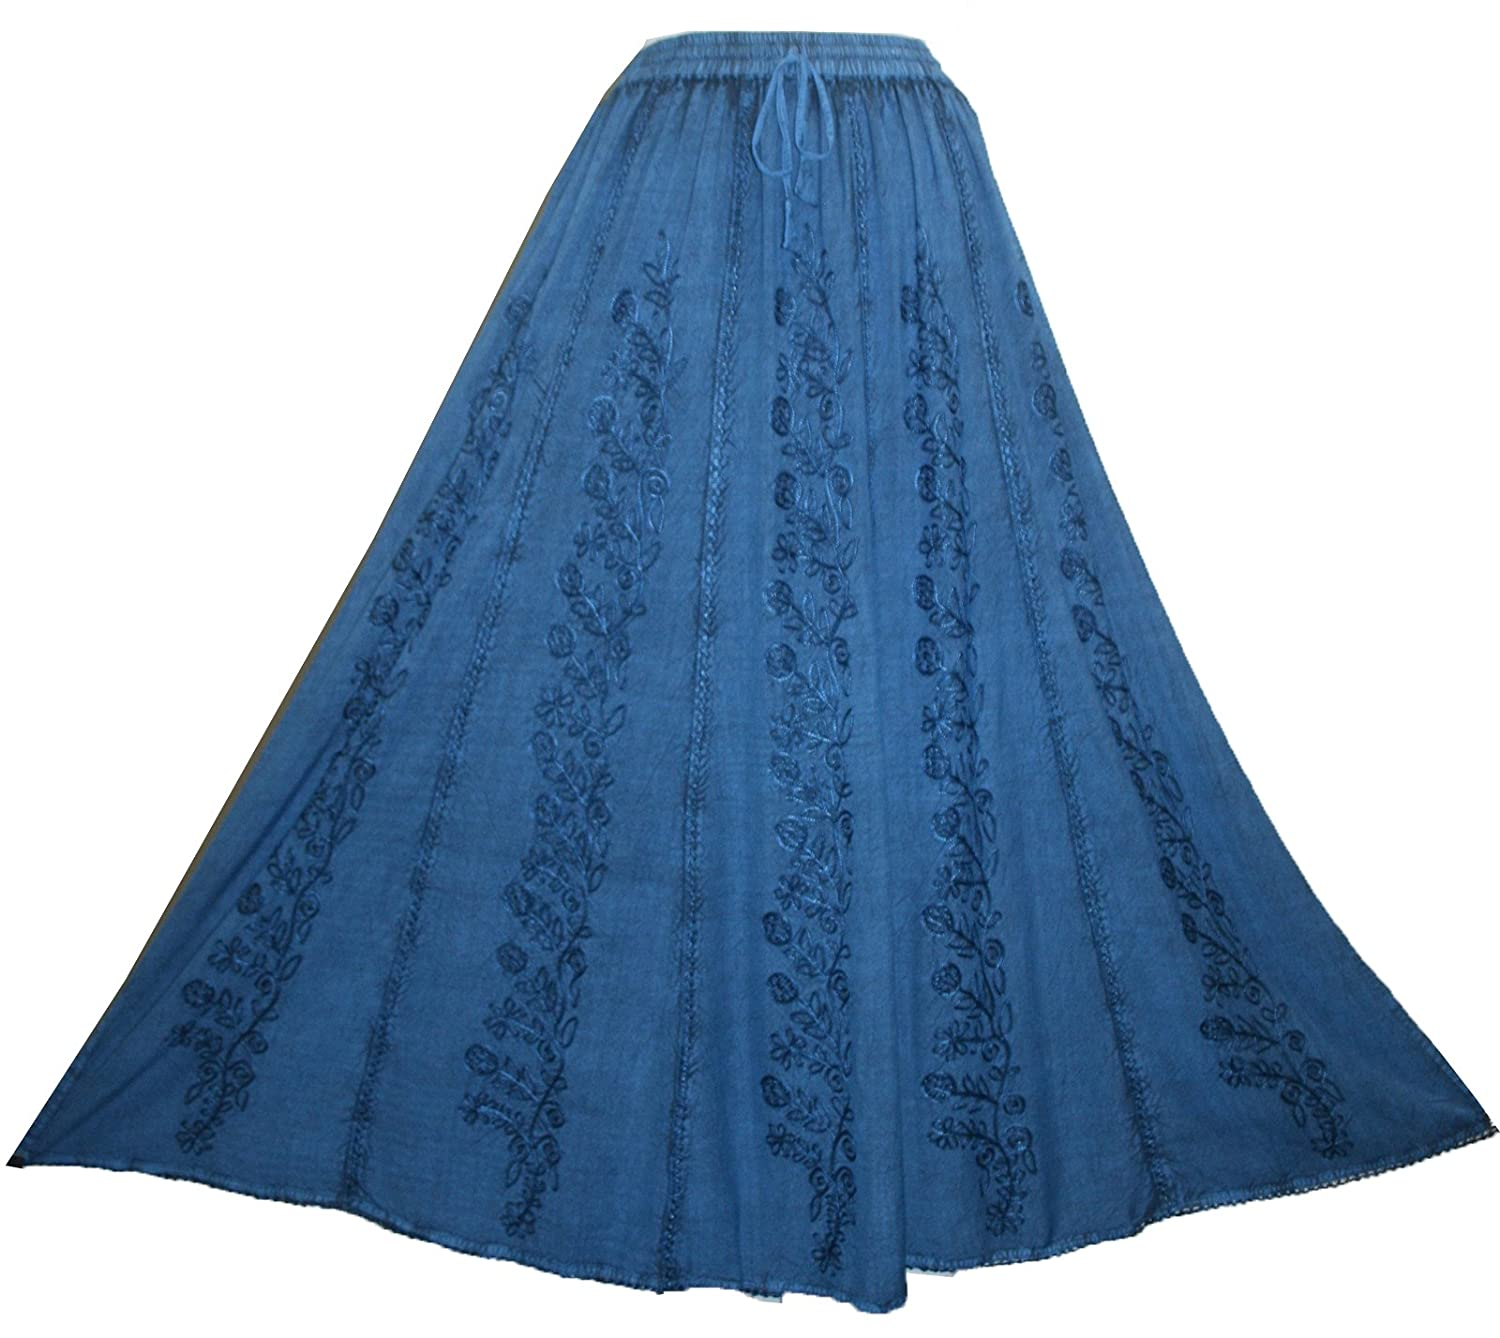 712 SK Agan Traders Medieval Embroidered Long Skirt